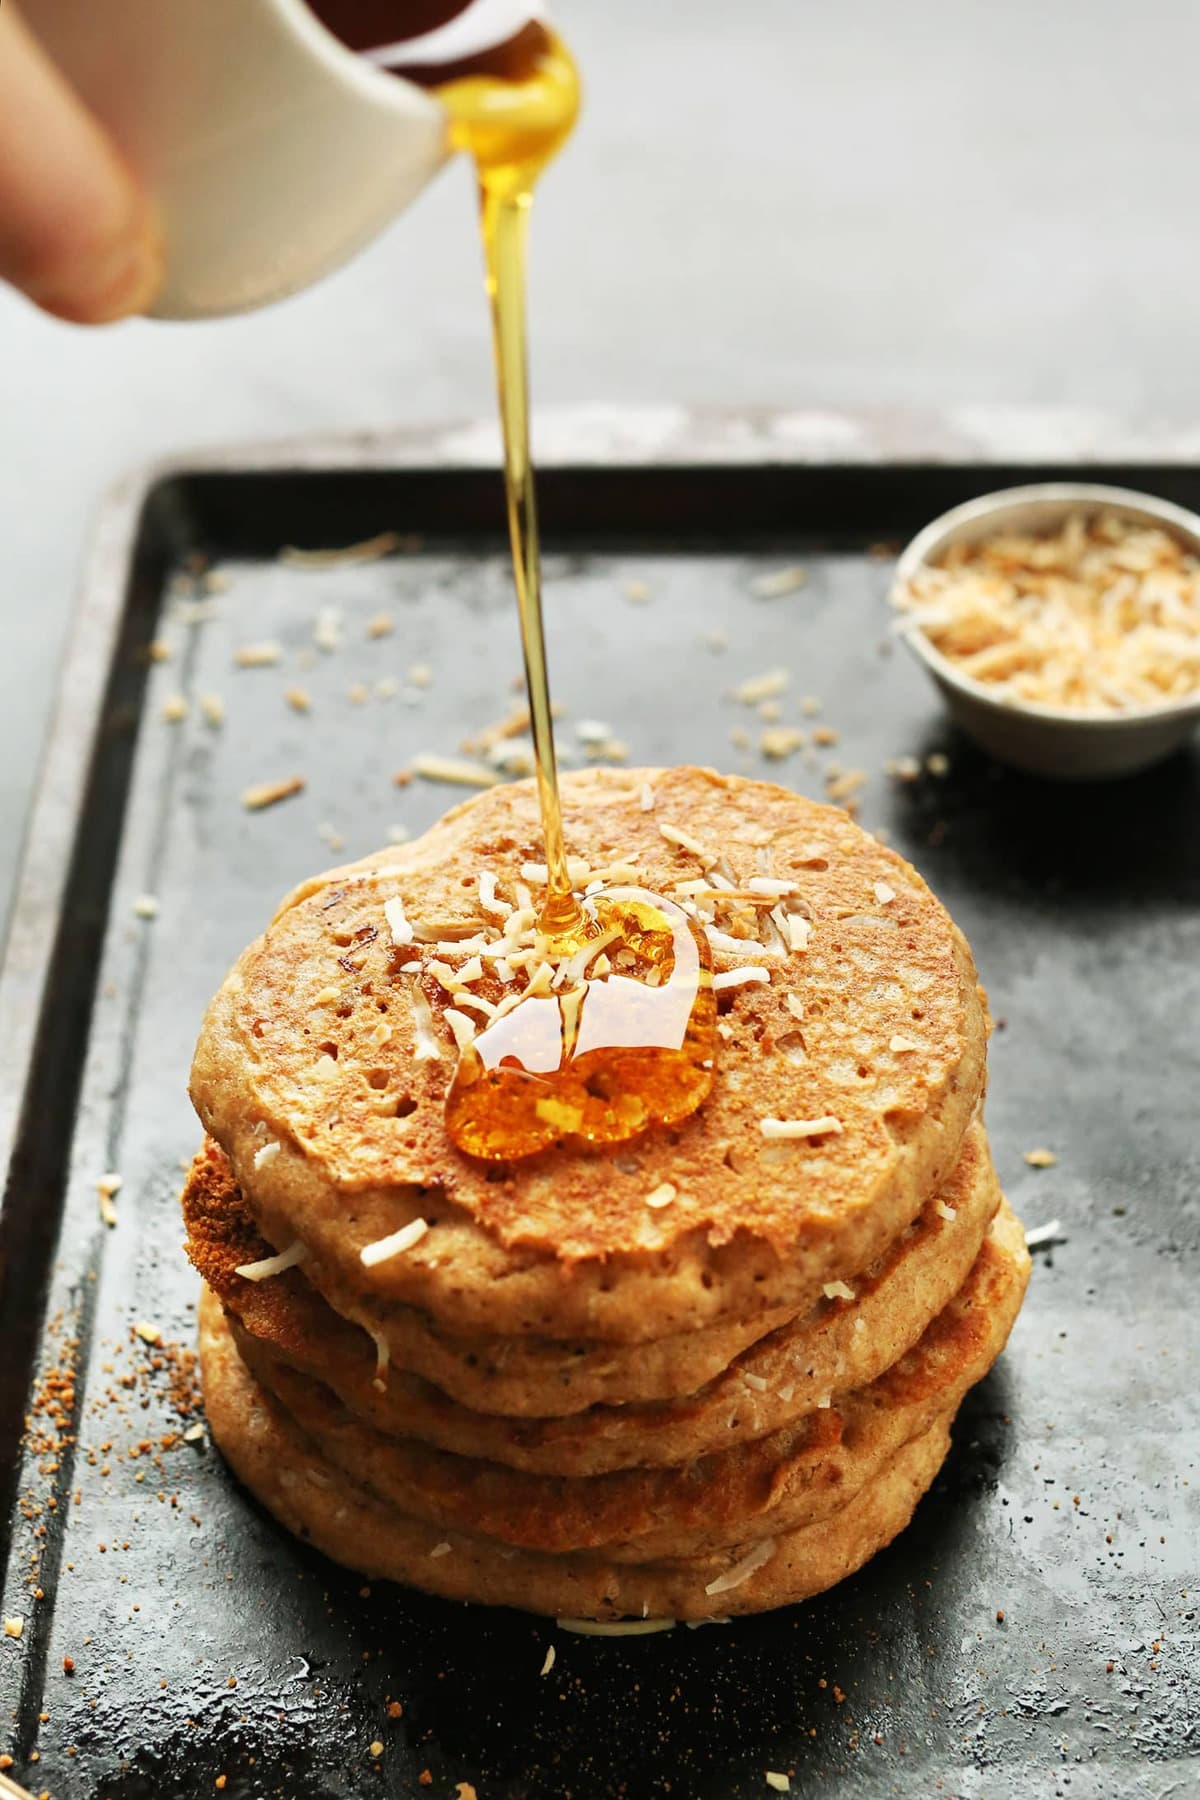 Toasted Cocoanut Pancakes